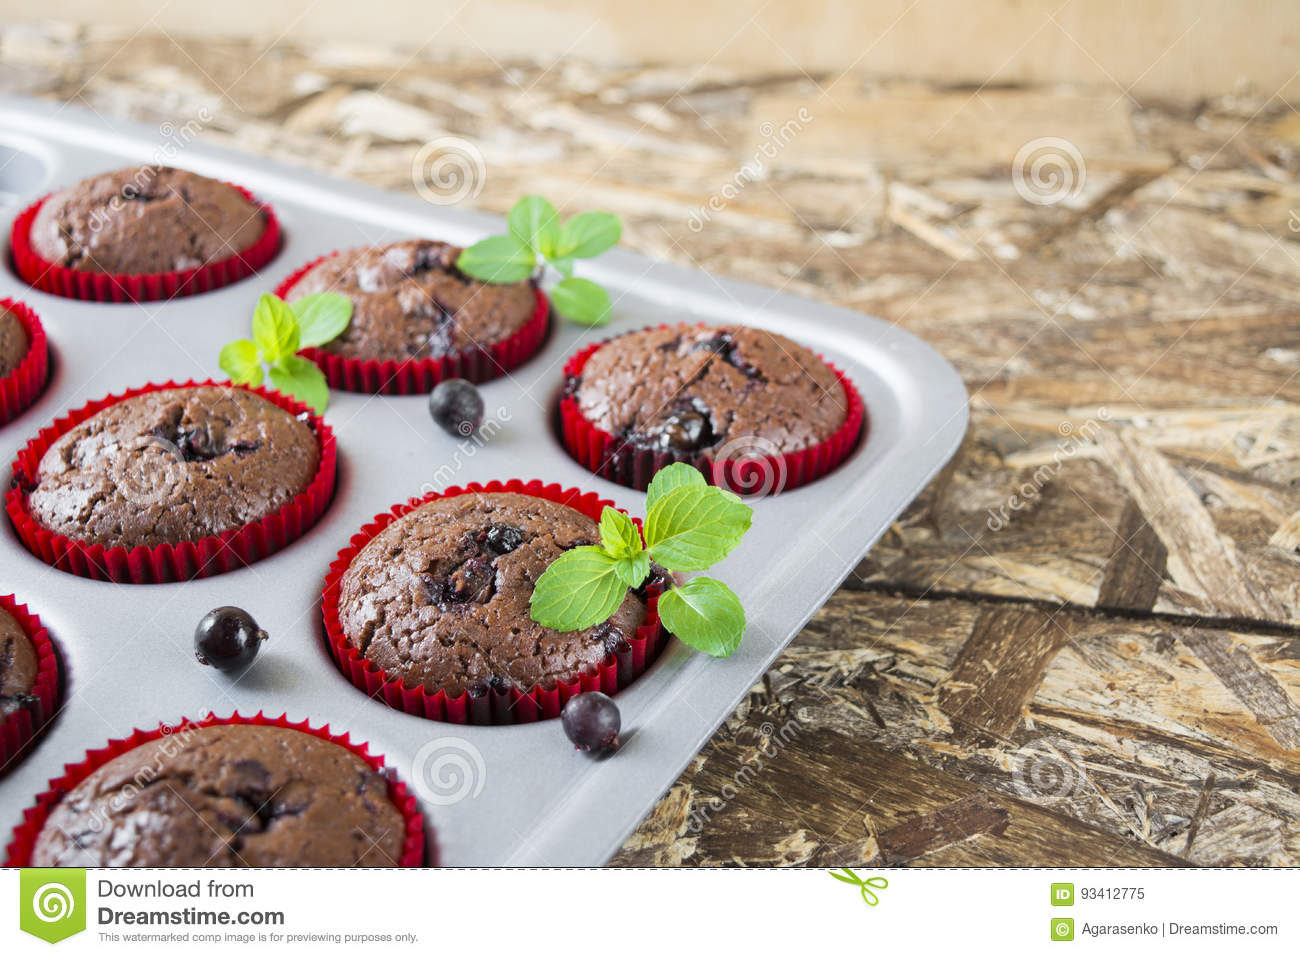 Freshly baked chocolate muffins with currant and mint in red forms